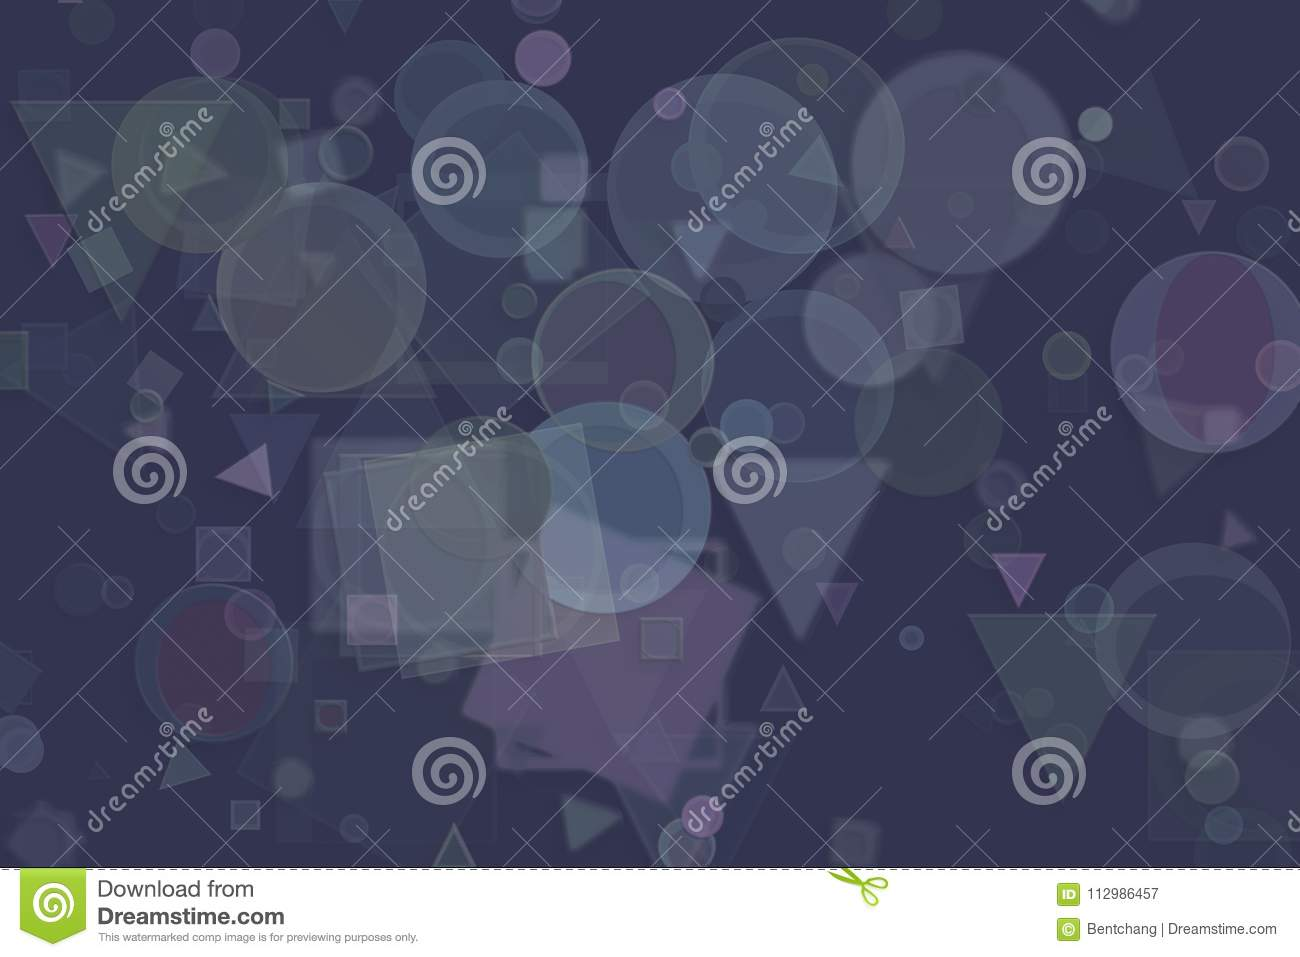 Abstract illustrations of shape, conceptual background. Pattern, fashion, decoration, backdrop & surface.